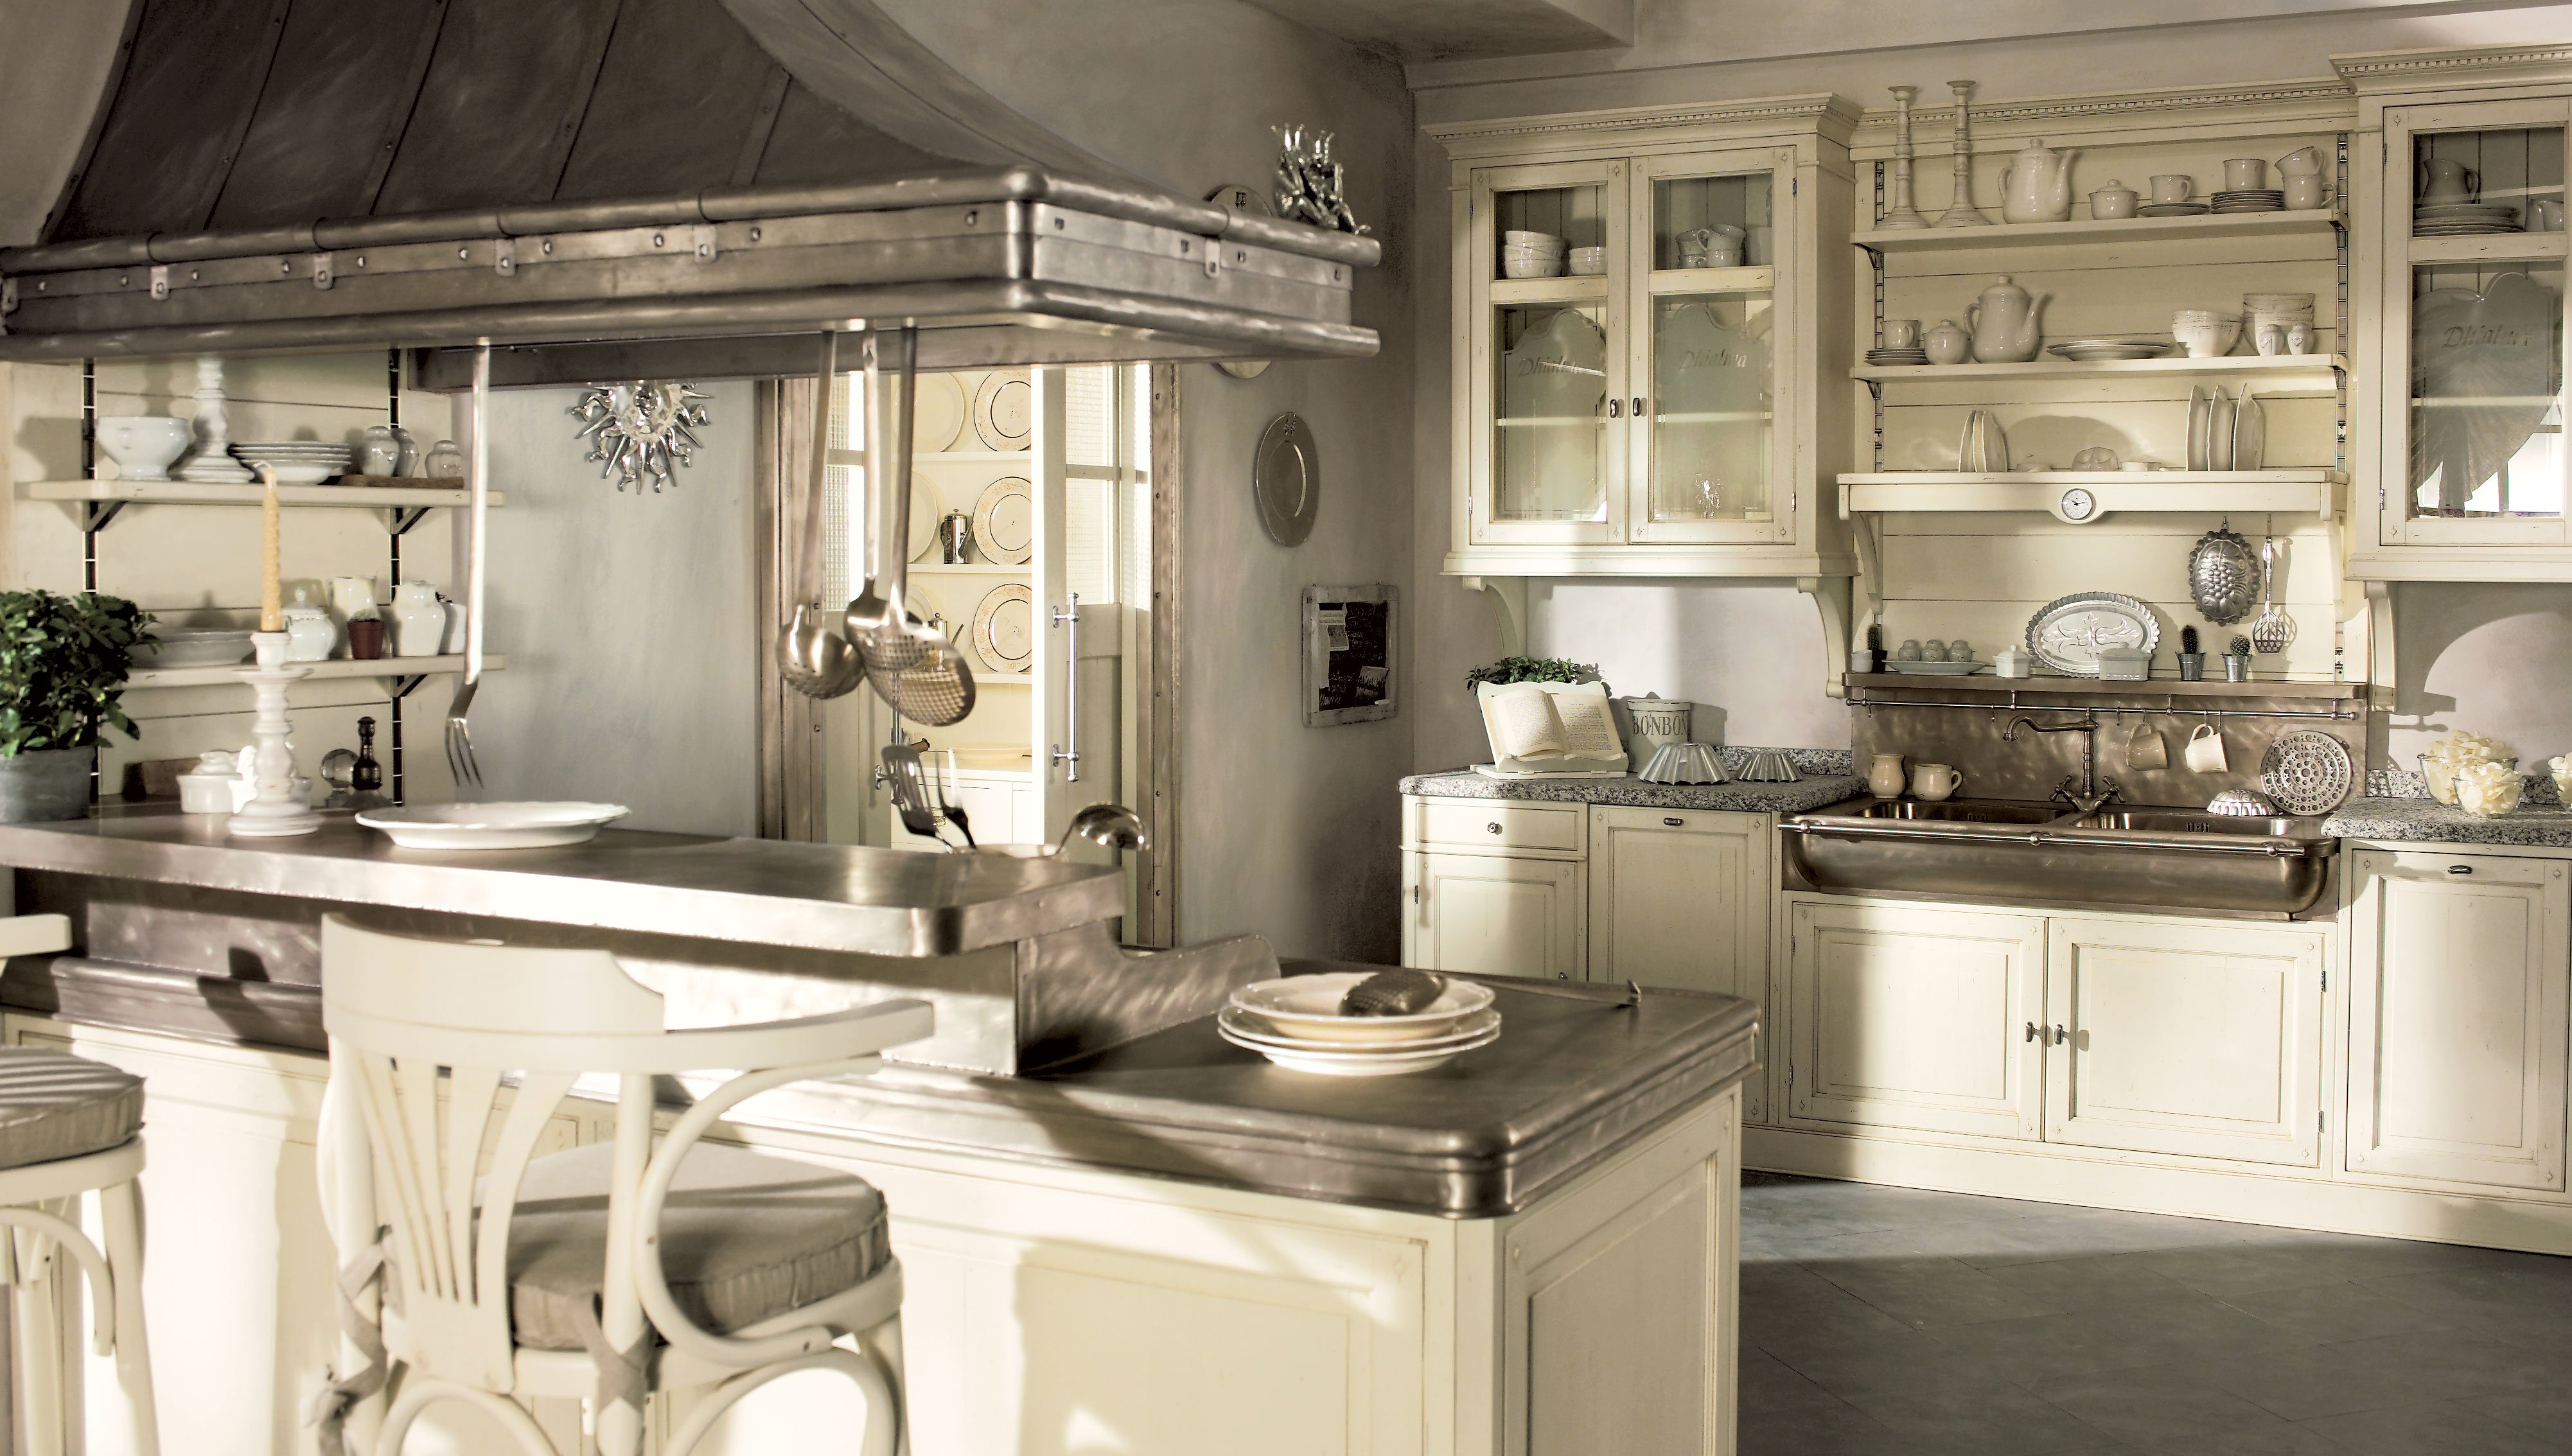 Beautiful Marche Cucine Componibili Pictures - Design & Ideas 2017 ...